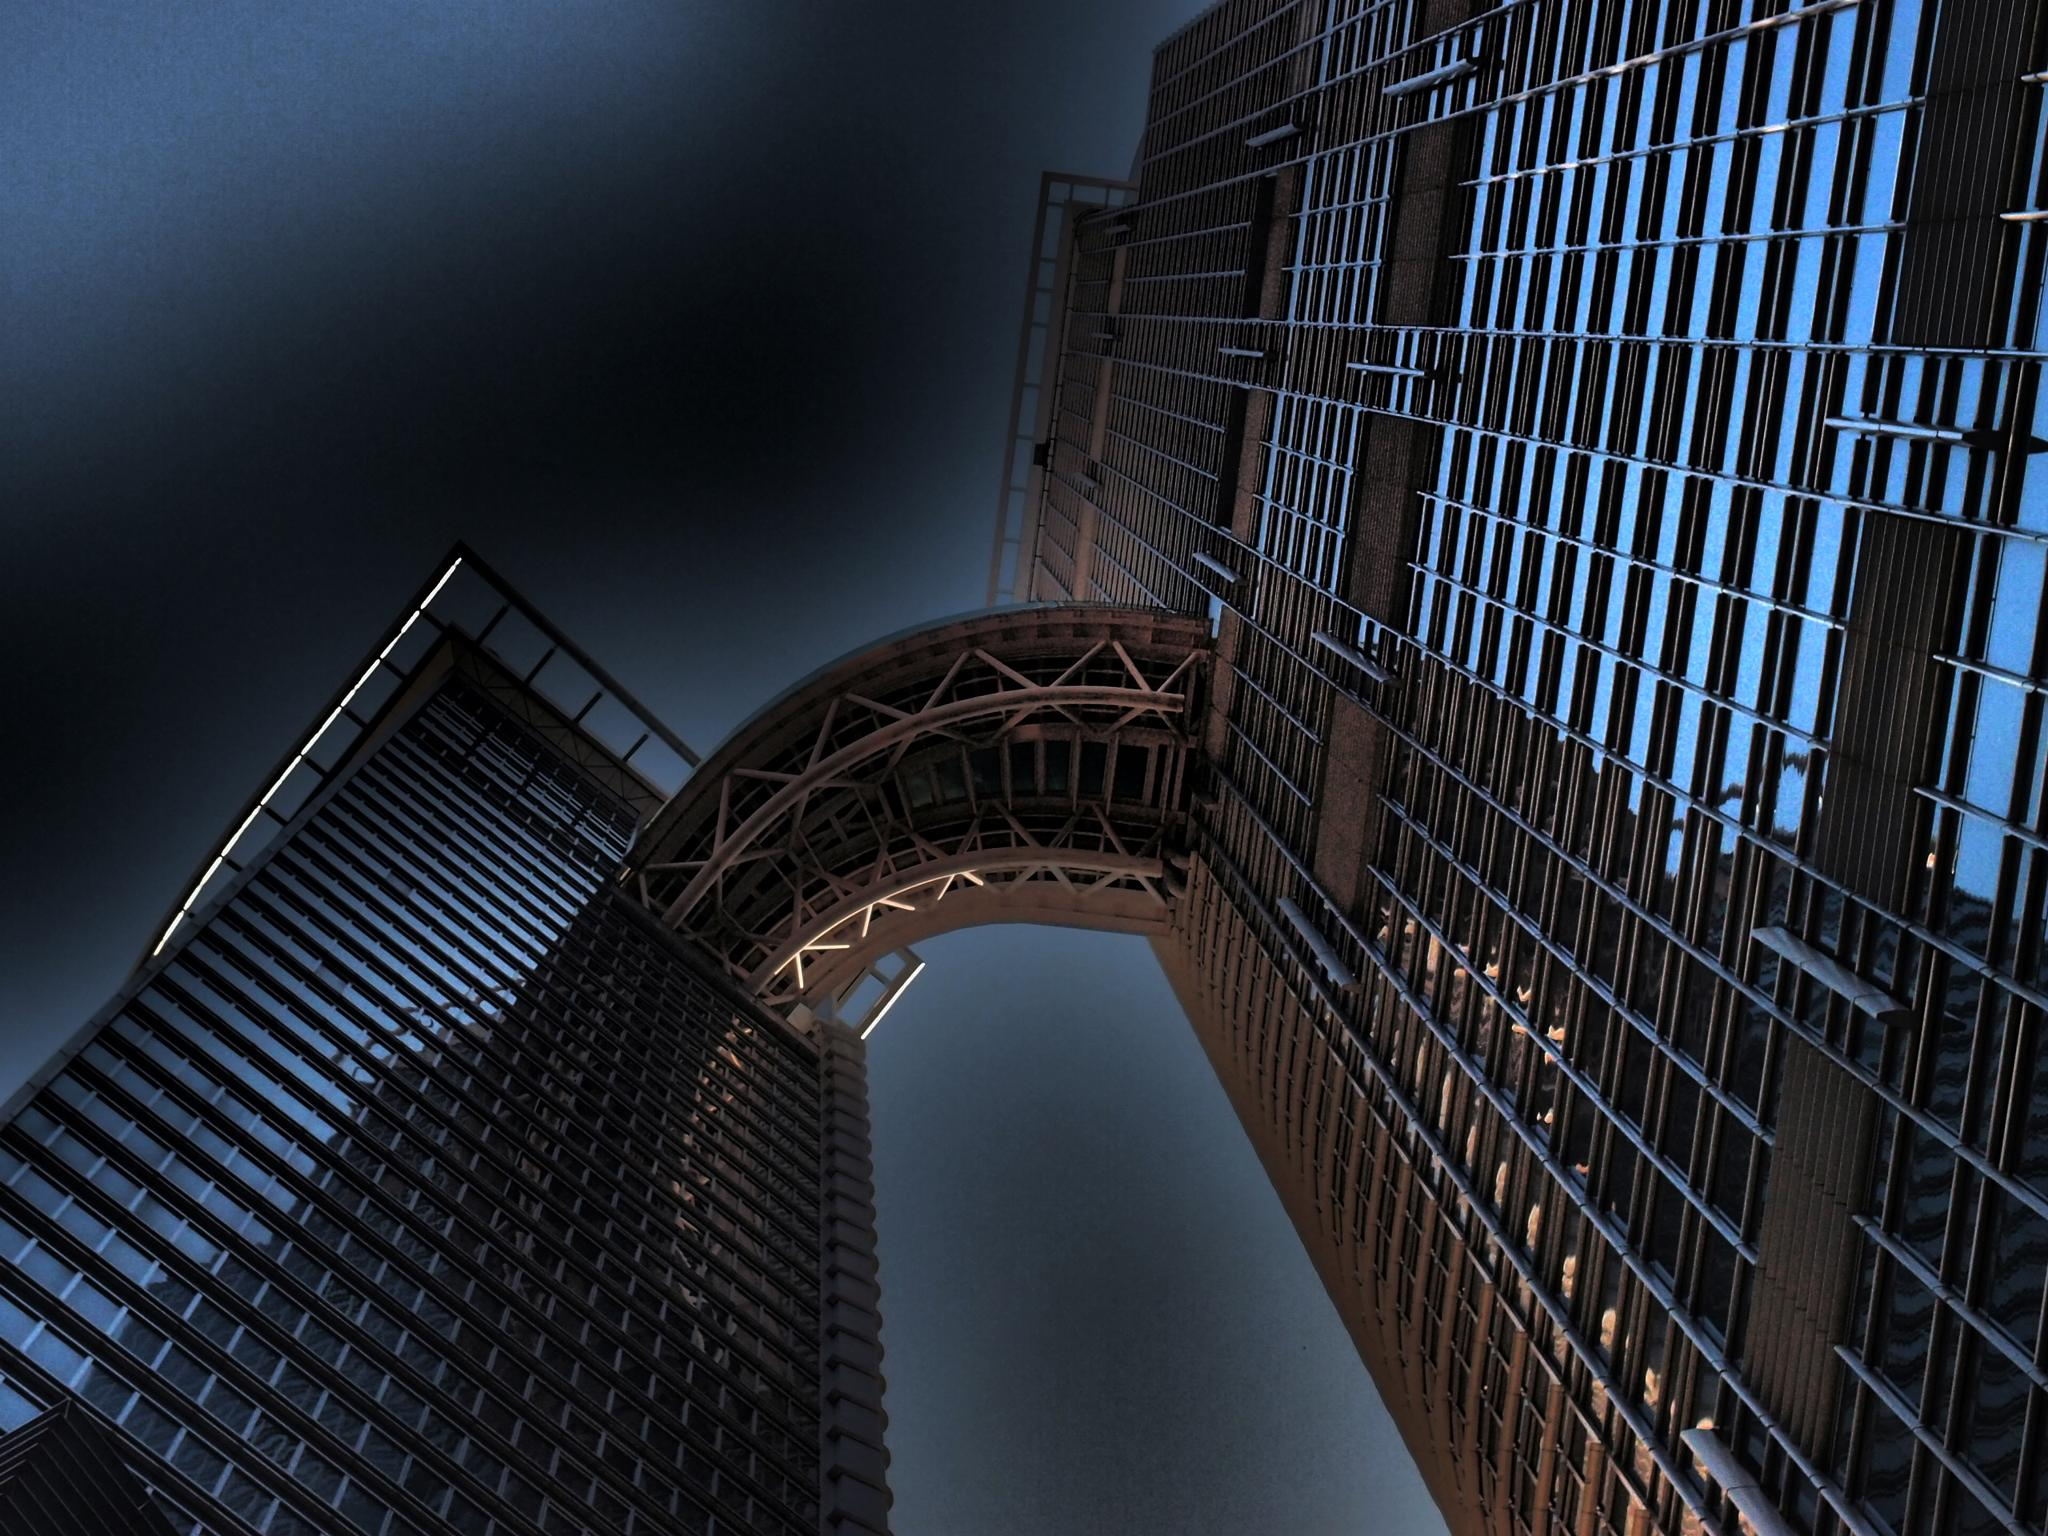 ...the building... by cyccanhk